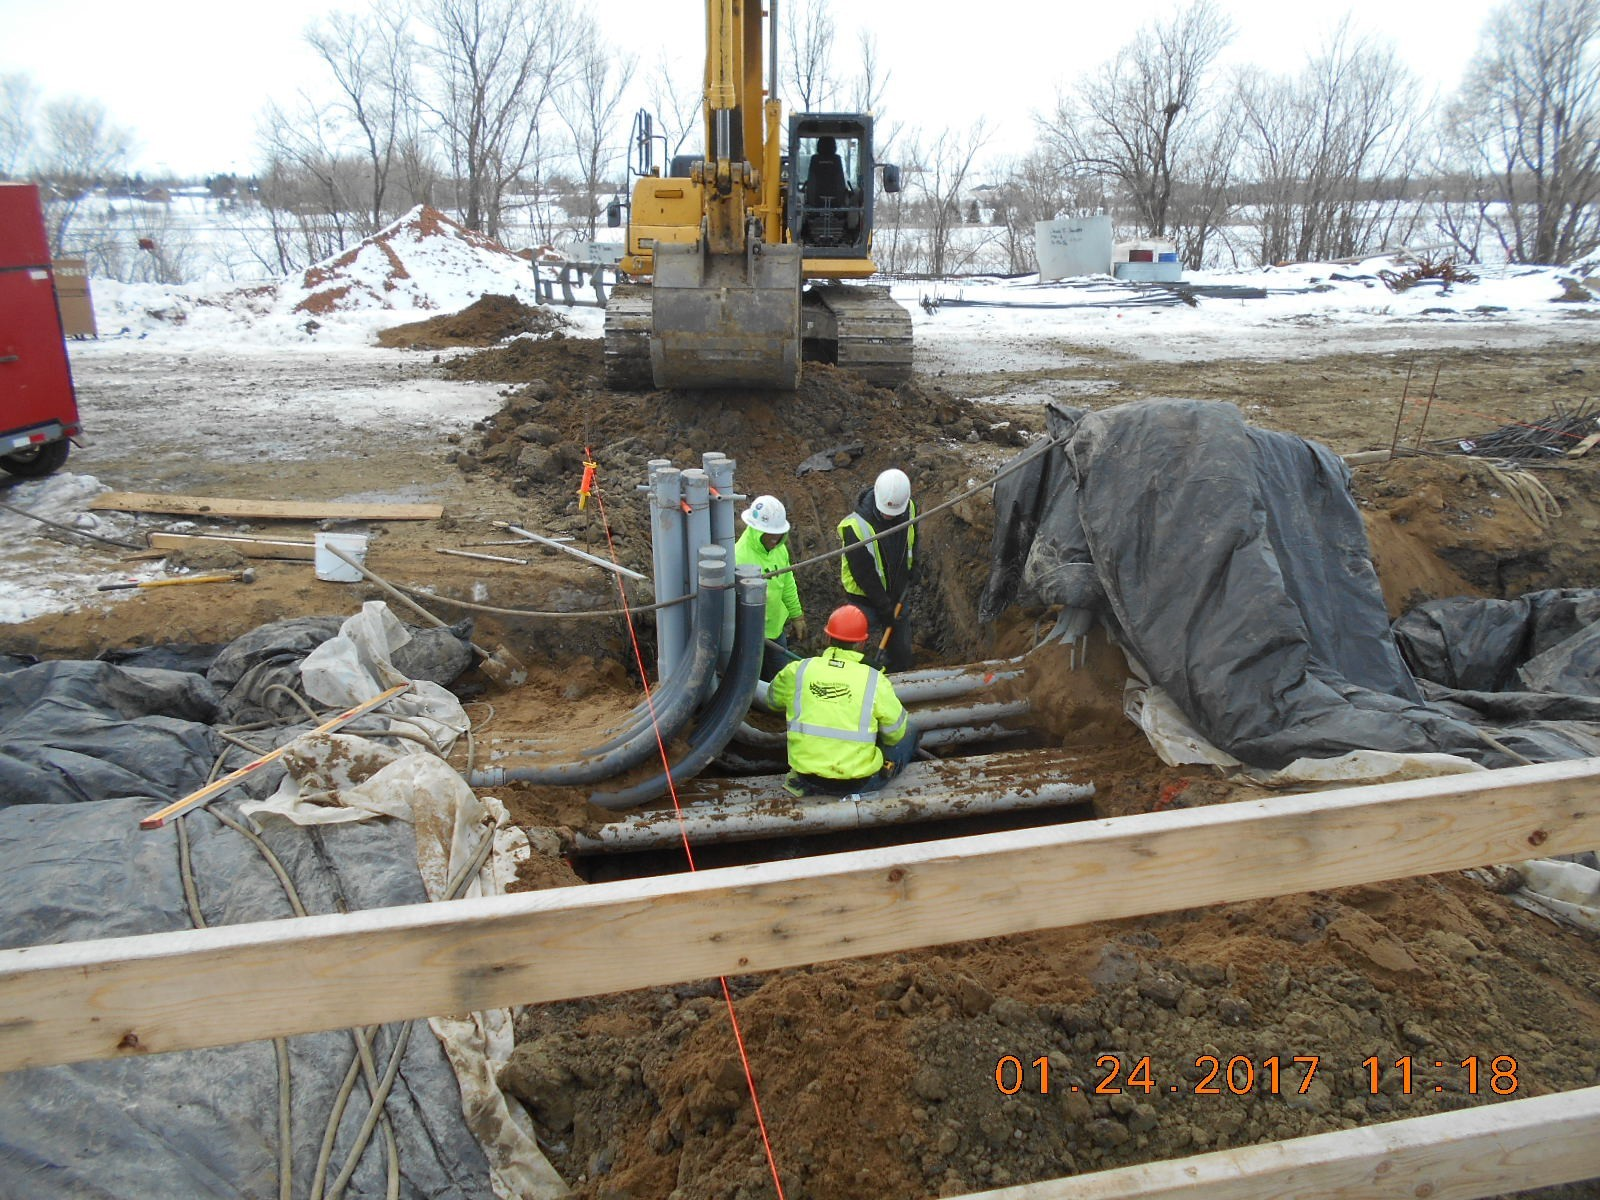 JTJ placing shoring and decking for the weir wall along the south side of the clarifier.